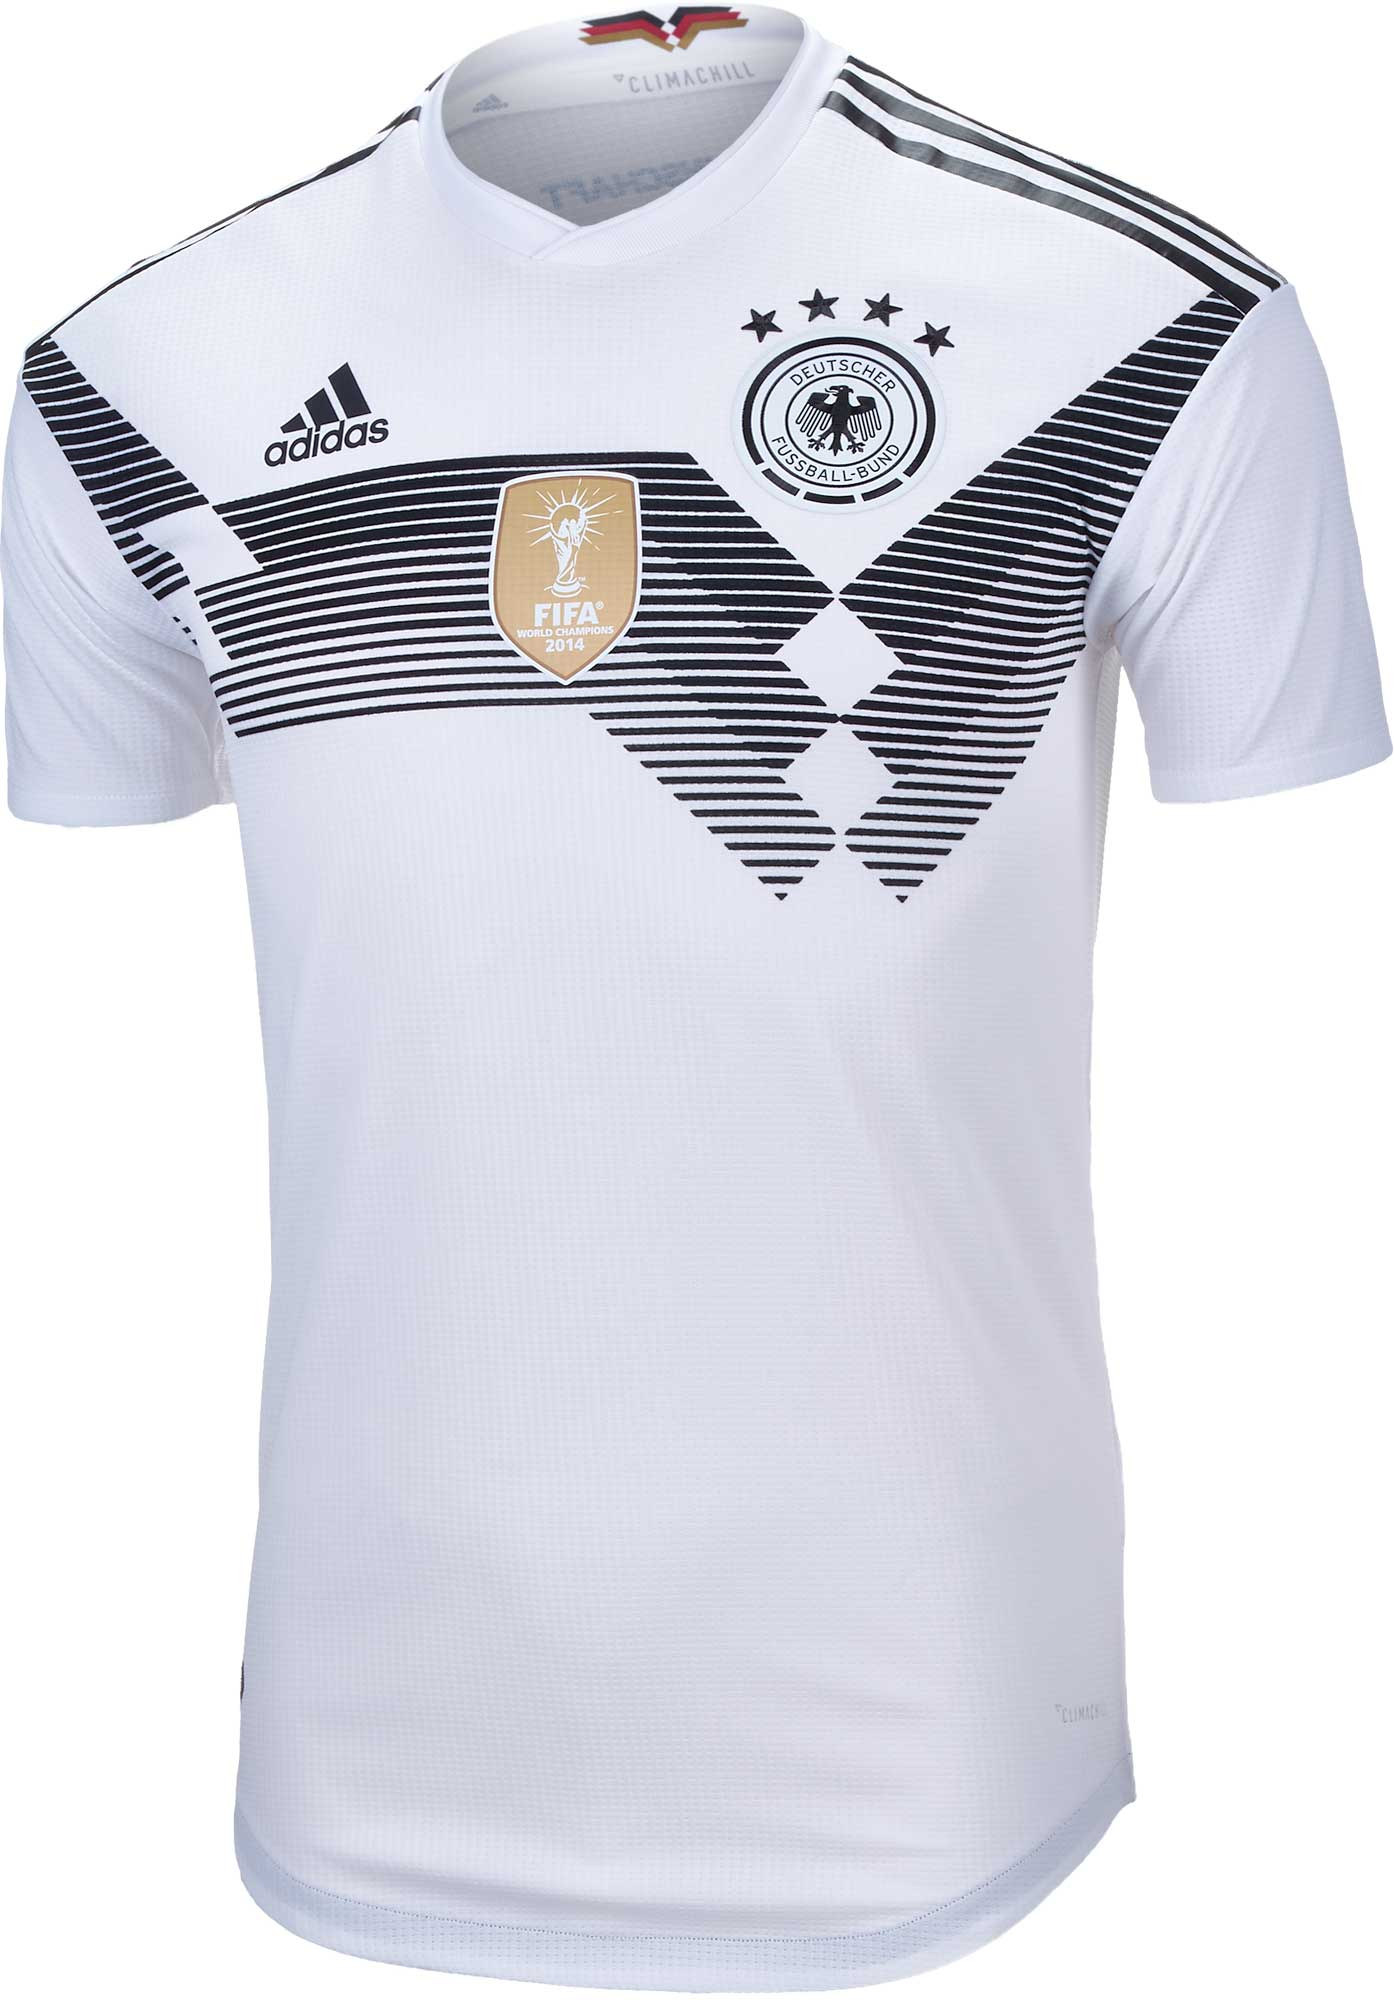 a883798c5 adidas Germany Authentic Home Jersey 2018-19 - Soccer Master